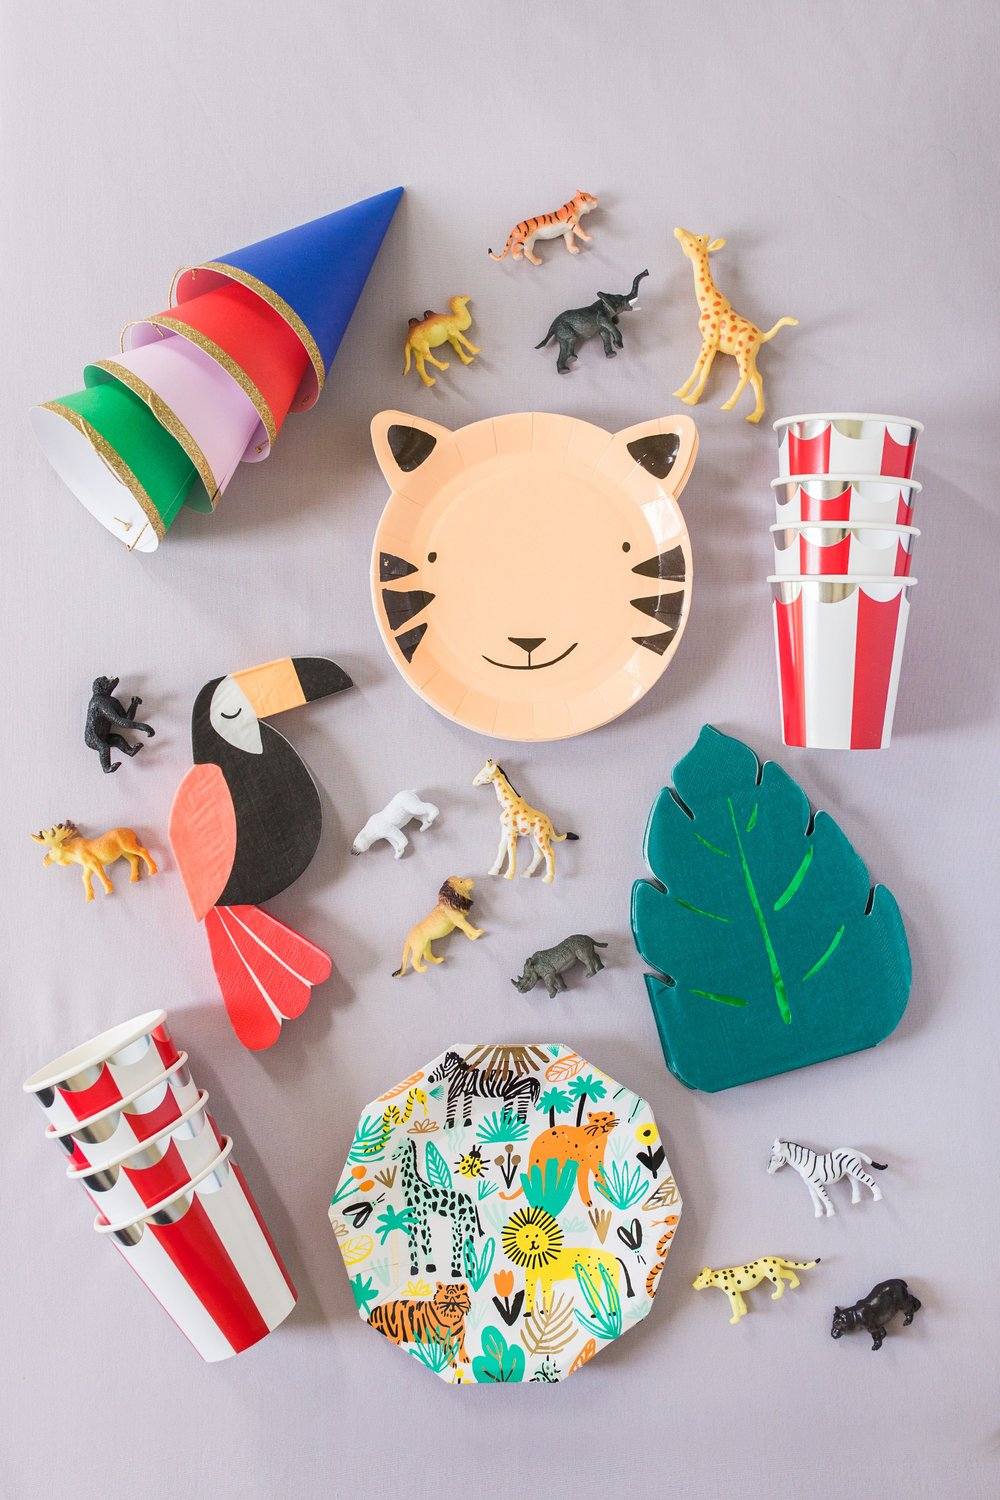 Party Animals - Go wild! A curated box full of everything you need to throw the wildest celebration ever!Each Party Animal kit is perfect for parties with up to 24 party guests.Party on, y'all!